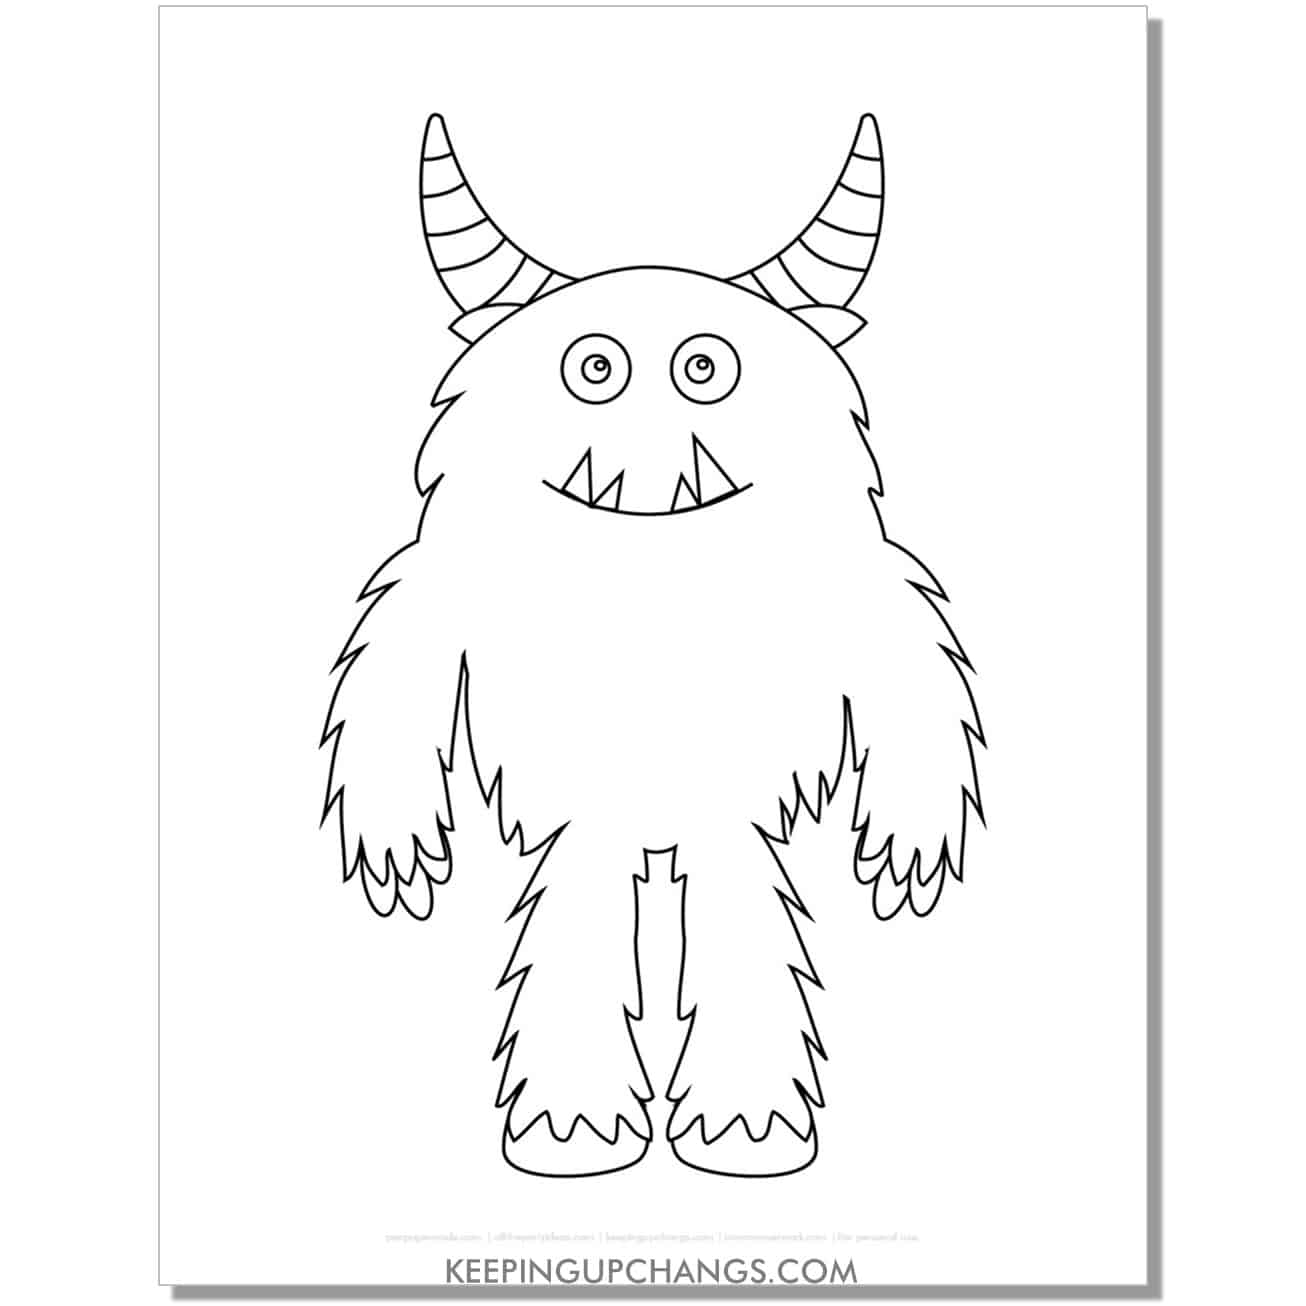 free tall, fuzzy monster with horns coloring page.